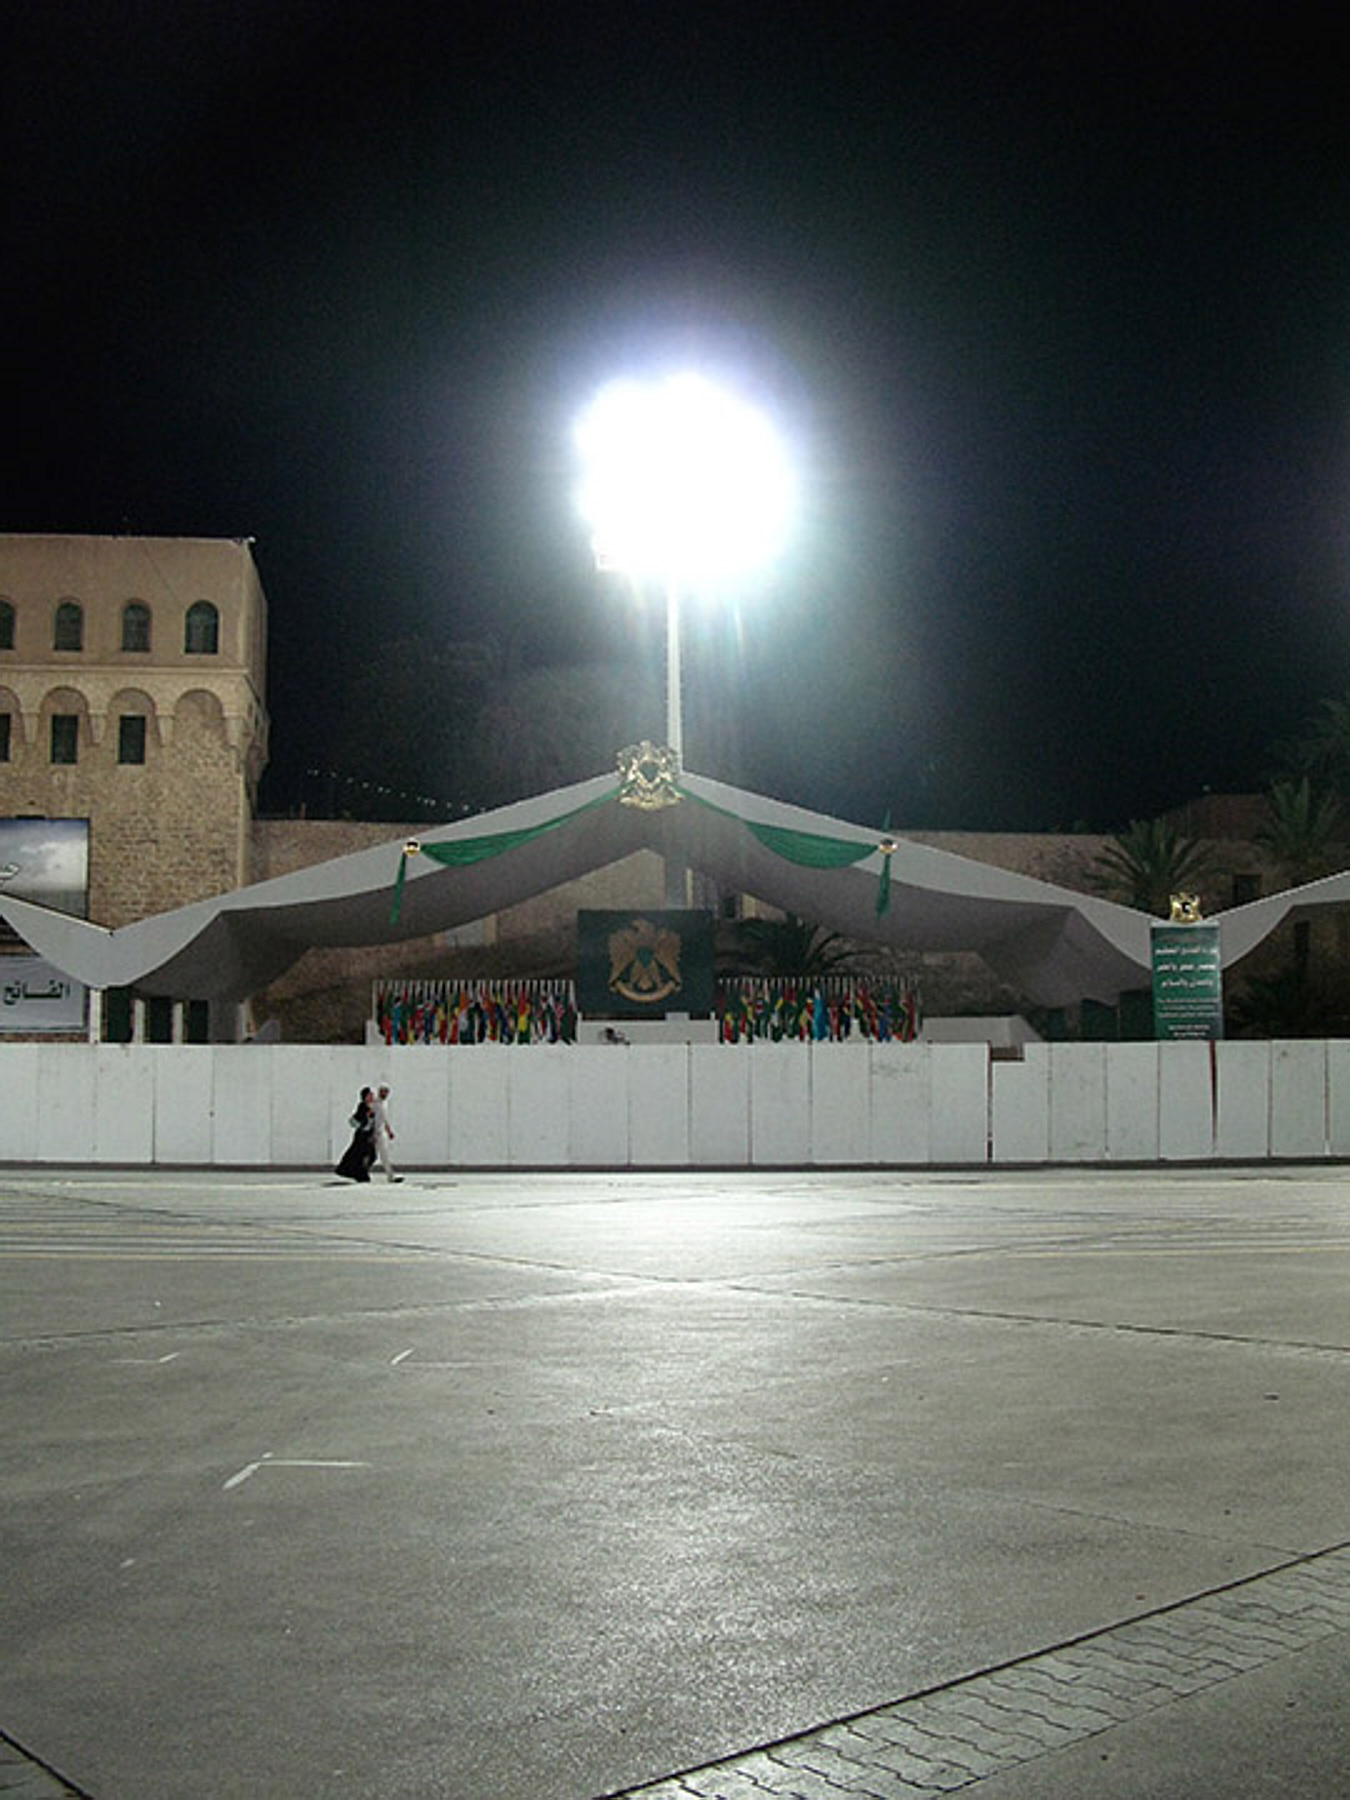 An evening walk in Green Square. Most of central Tripoli was off limits to the general public whilst the various military parades and celebrations were taking place.